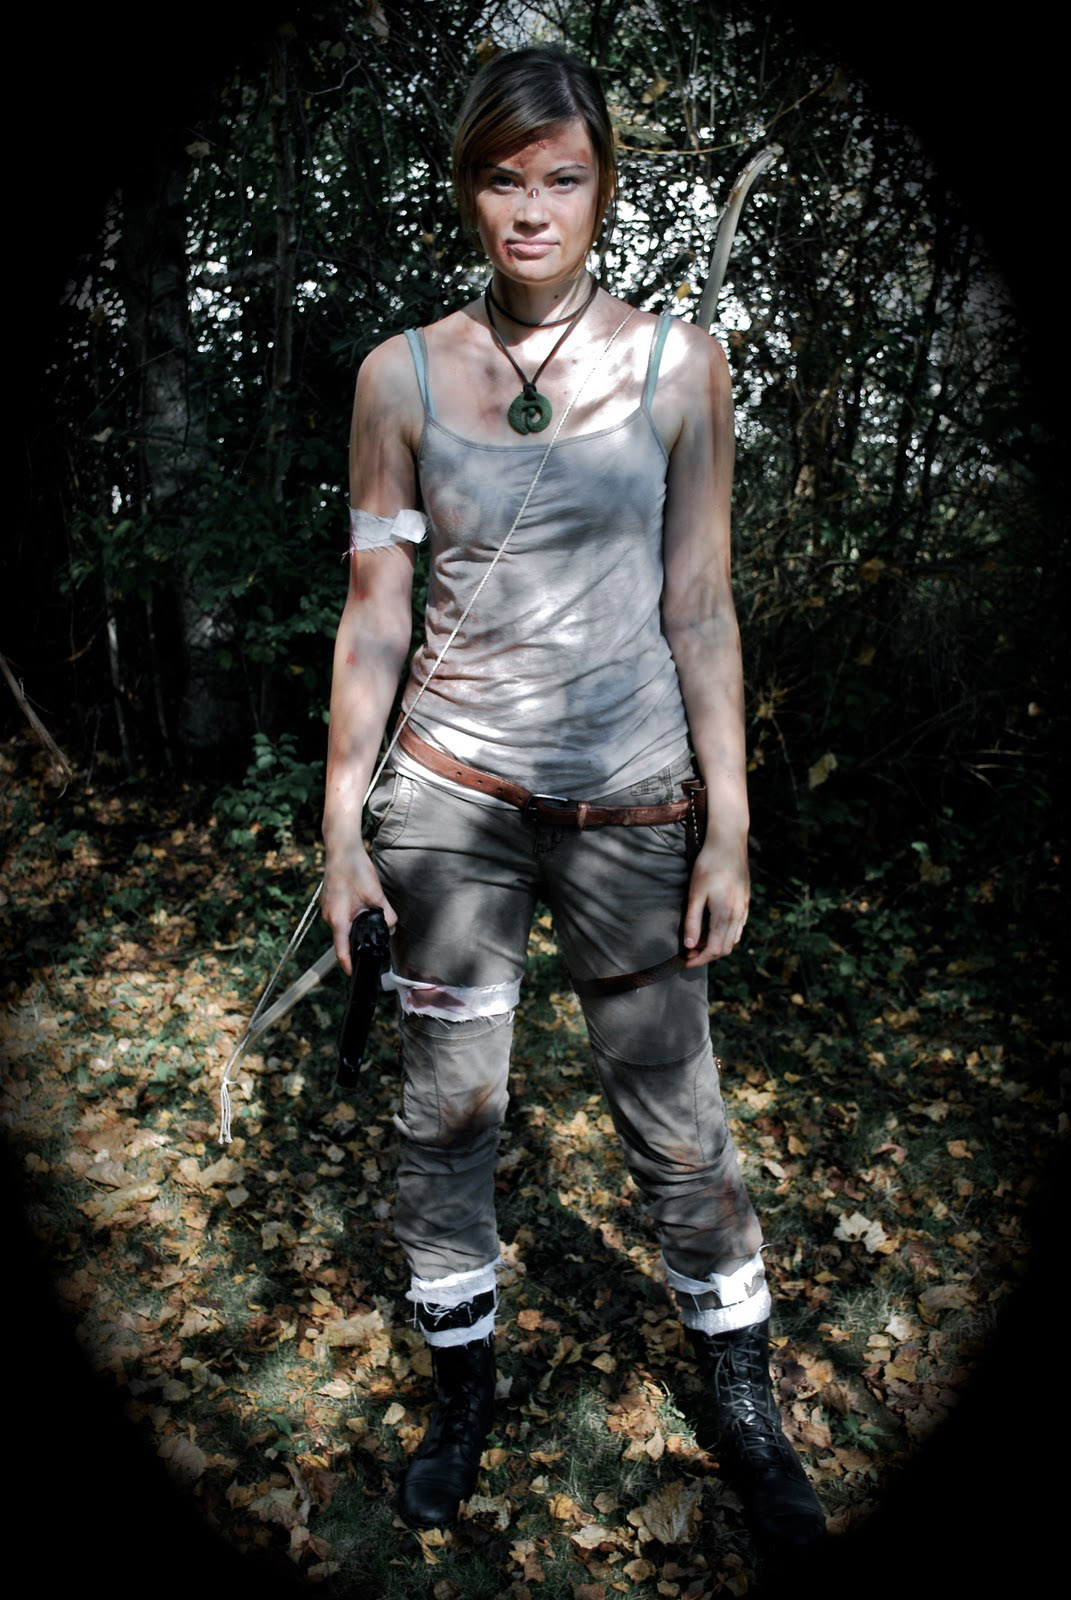 Stella's Tomb Raider Blog: Creating Your Own Lara Croft TOMB